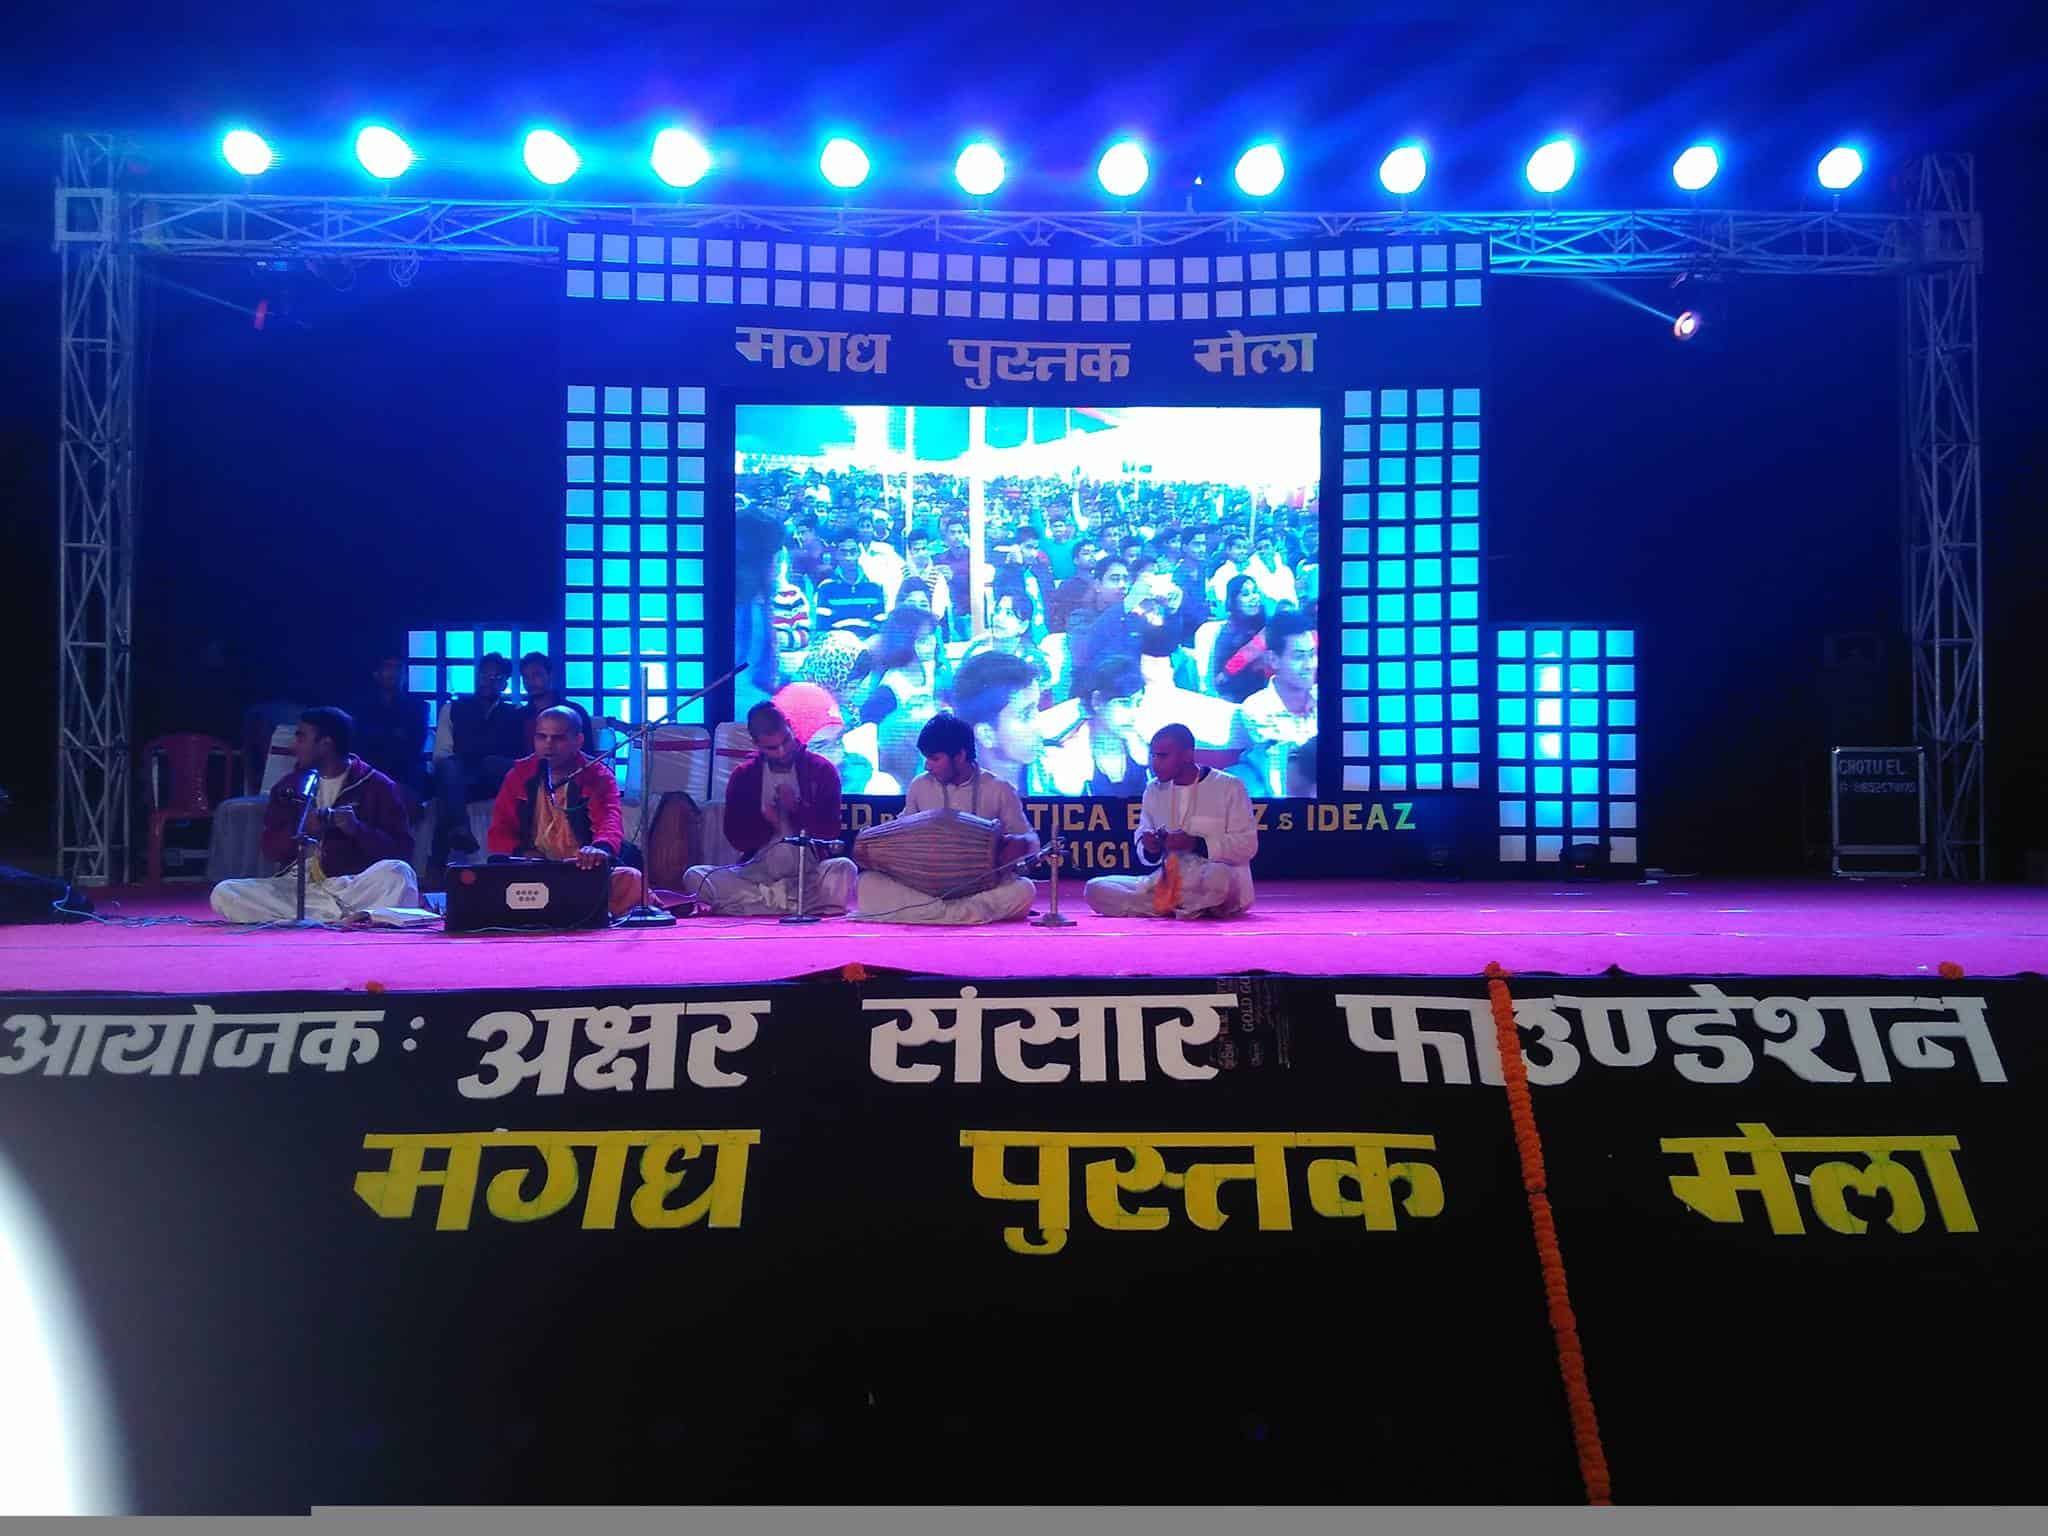 ecstatic kirtan at Magadh Book Fare, Gandhi Maidan